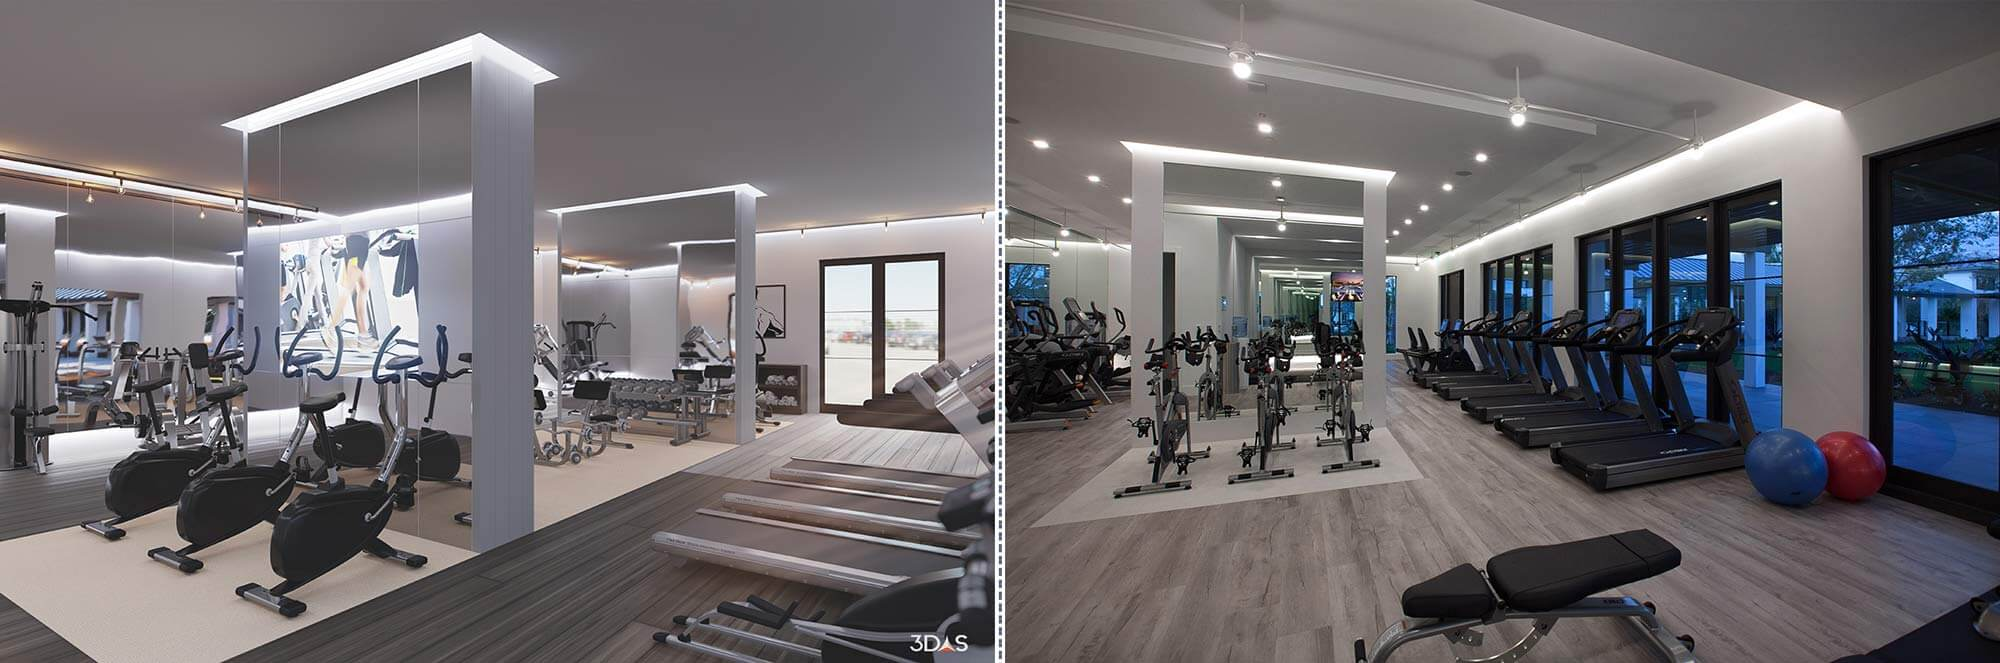 Kalea Bay 3D Rendering (Left) and Photo (Right)